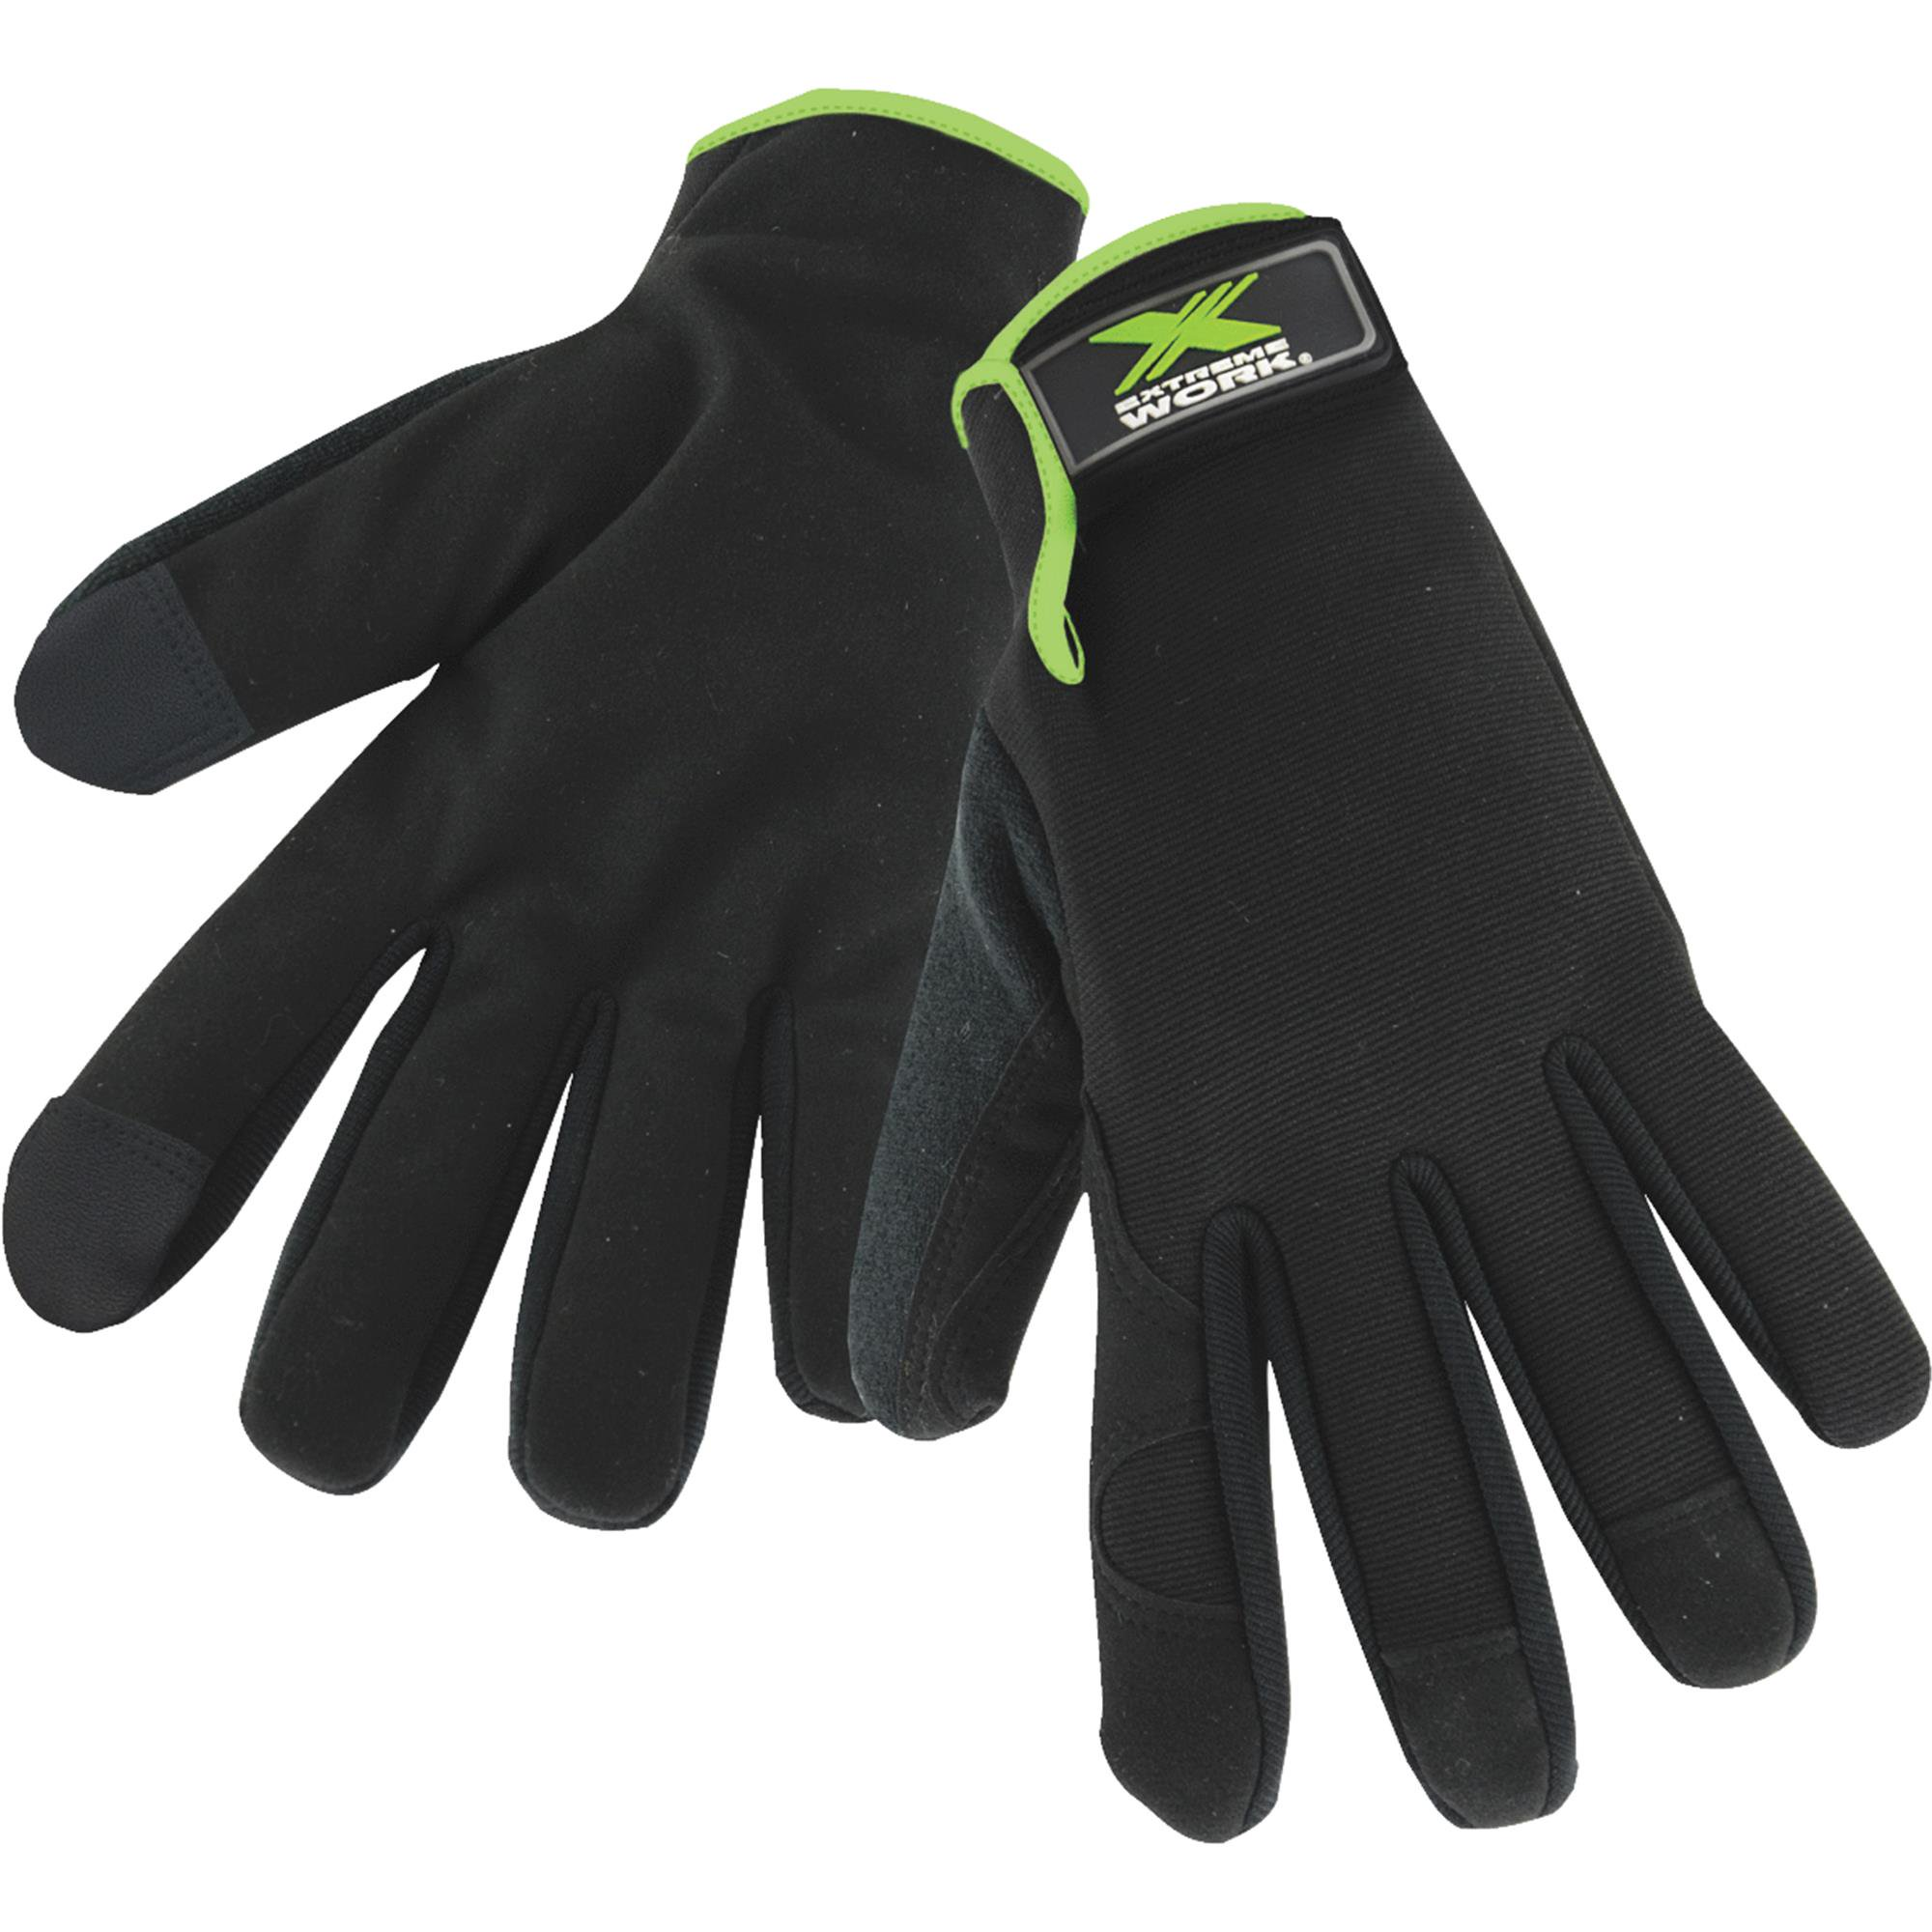 West Chester Extreme Work Mens Synthetic Leather Work Glove